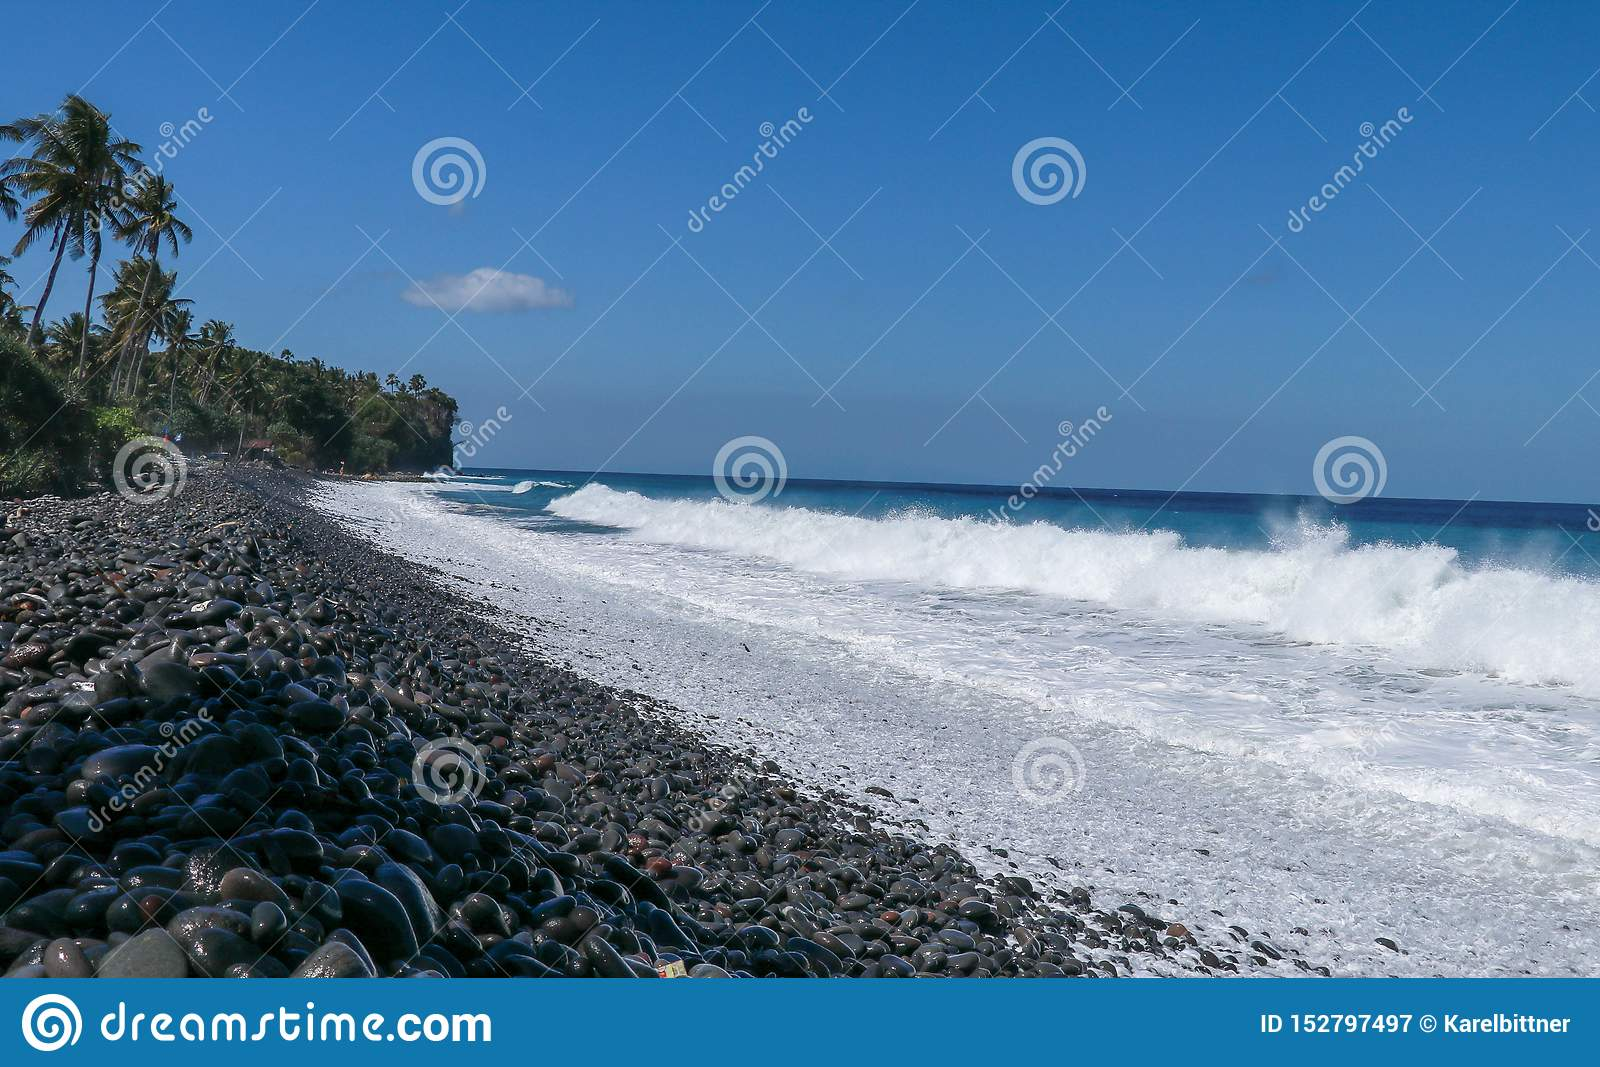 Waves attack the stony beach, and sea water spills over the beach`s edge. Palm trees and tropical vegetation line the coast of the